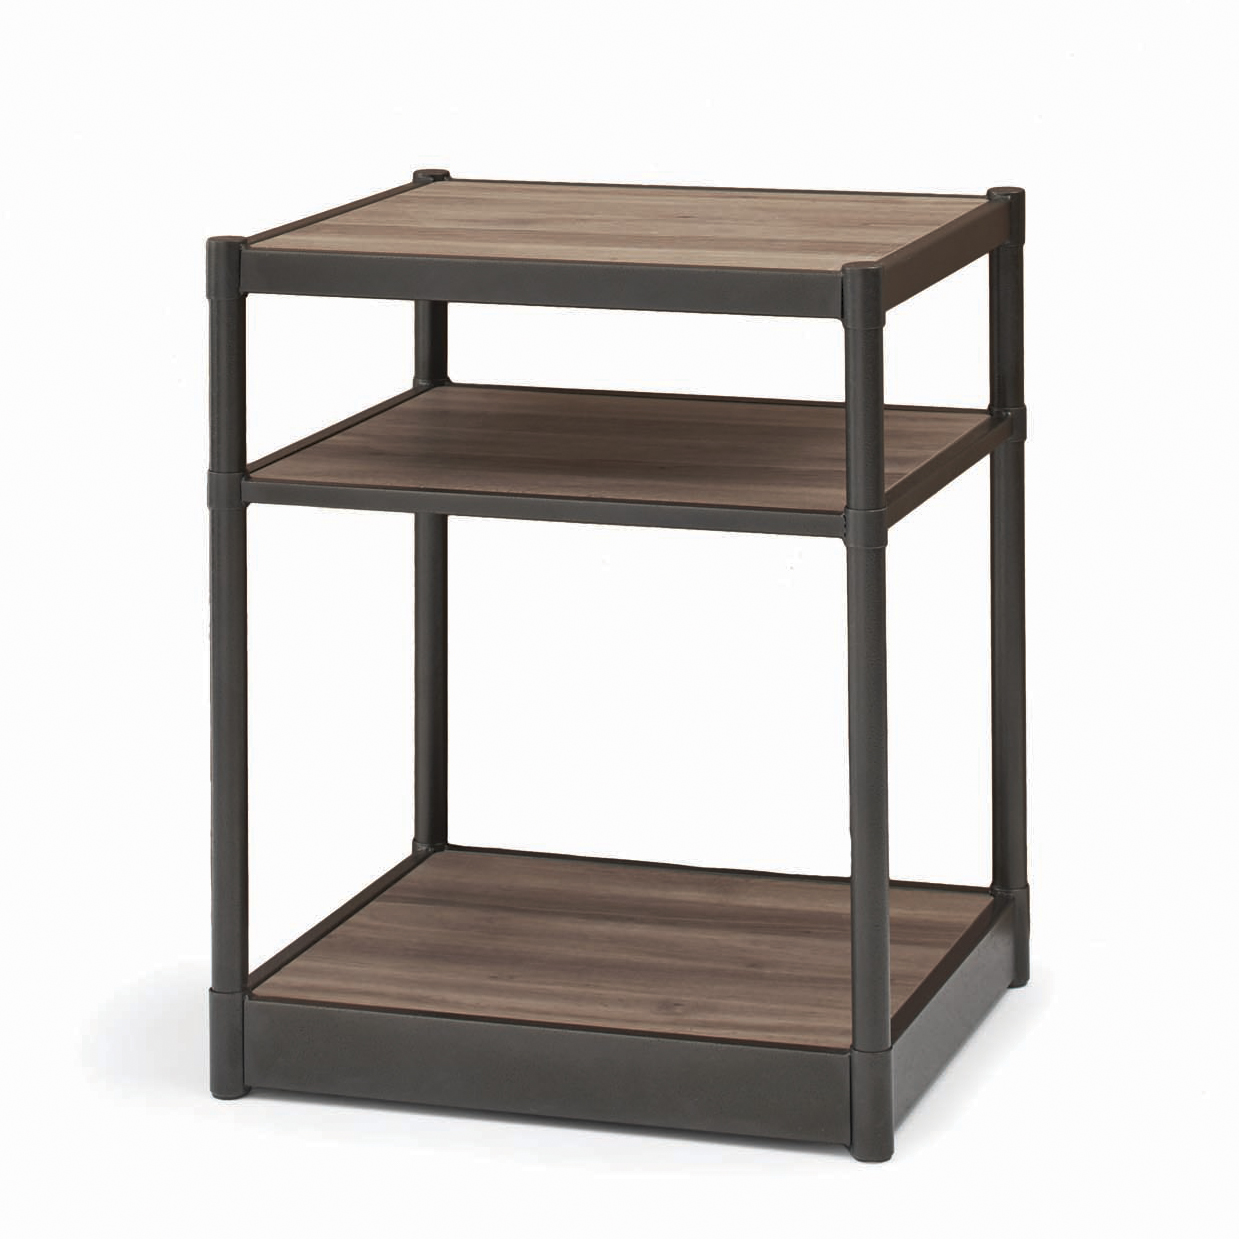 Better Homes and Gardens Bailey Inn Side Table, Washed Oak Finish